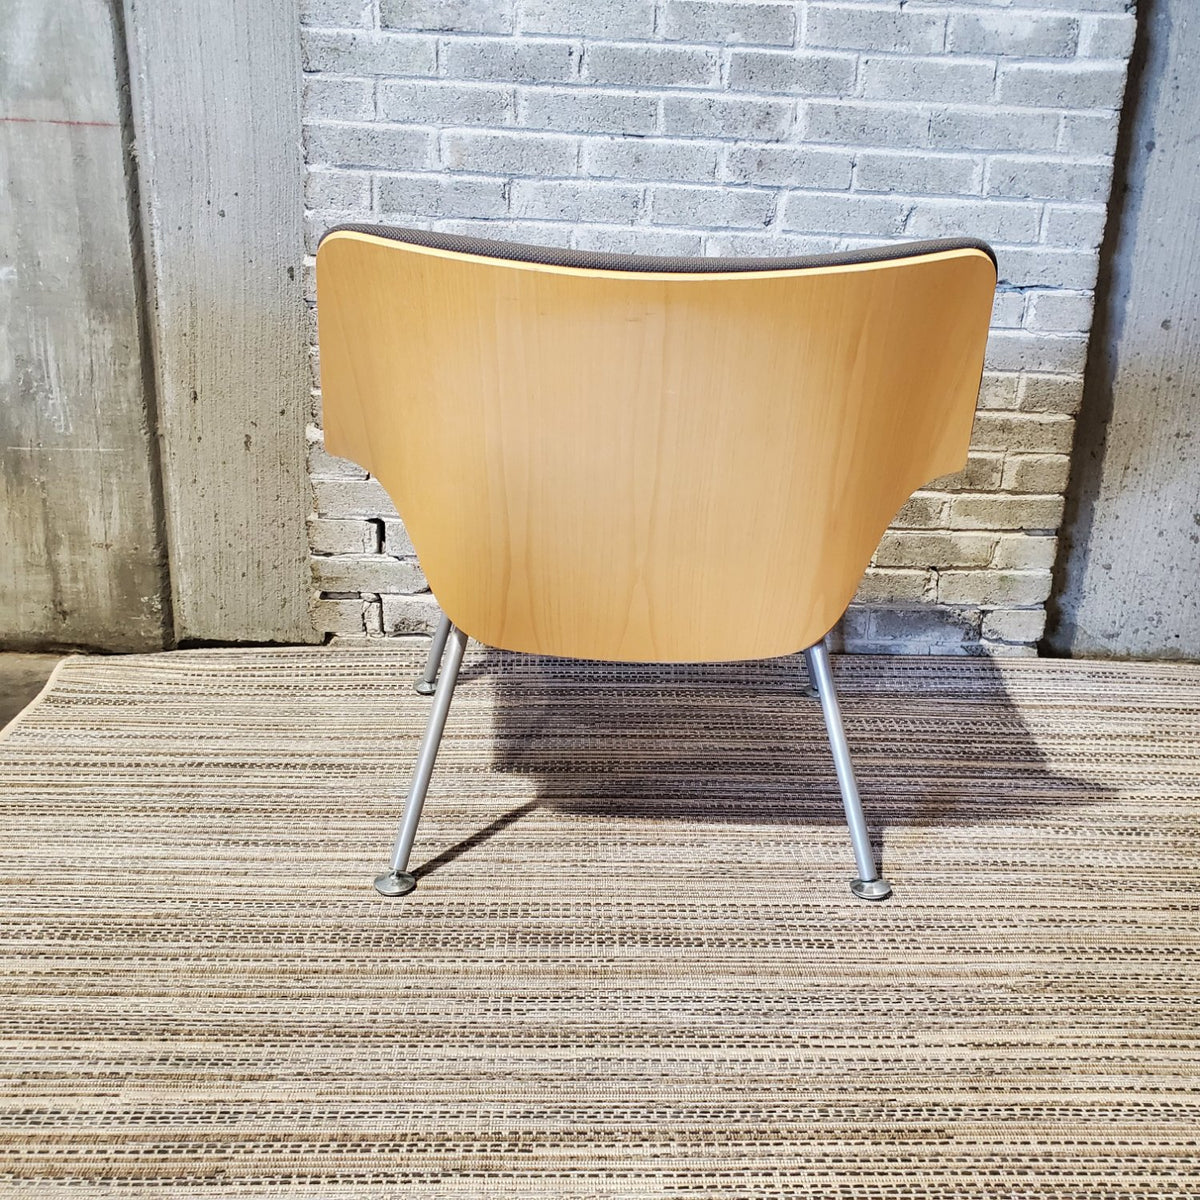 Pre-Owned - Herman Miller Swoop Lounge Chair - Duckys Office Furniture